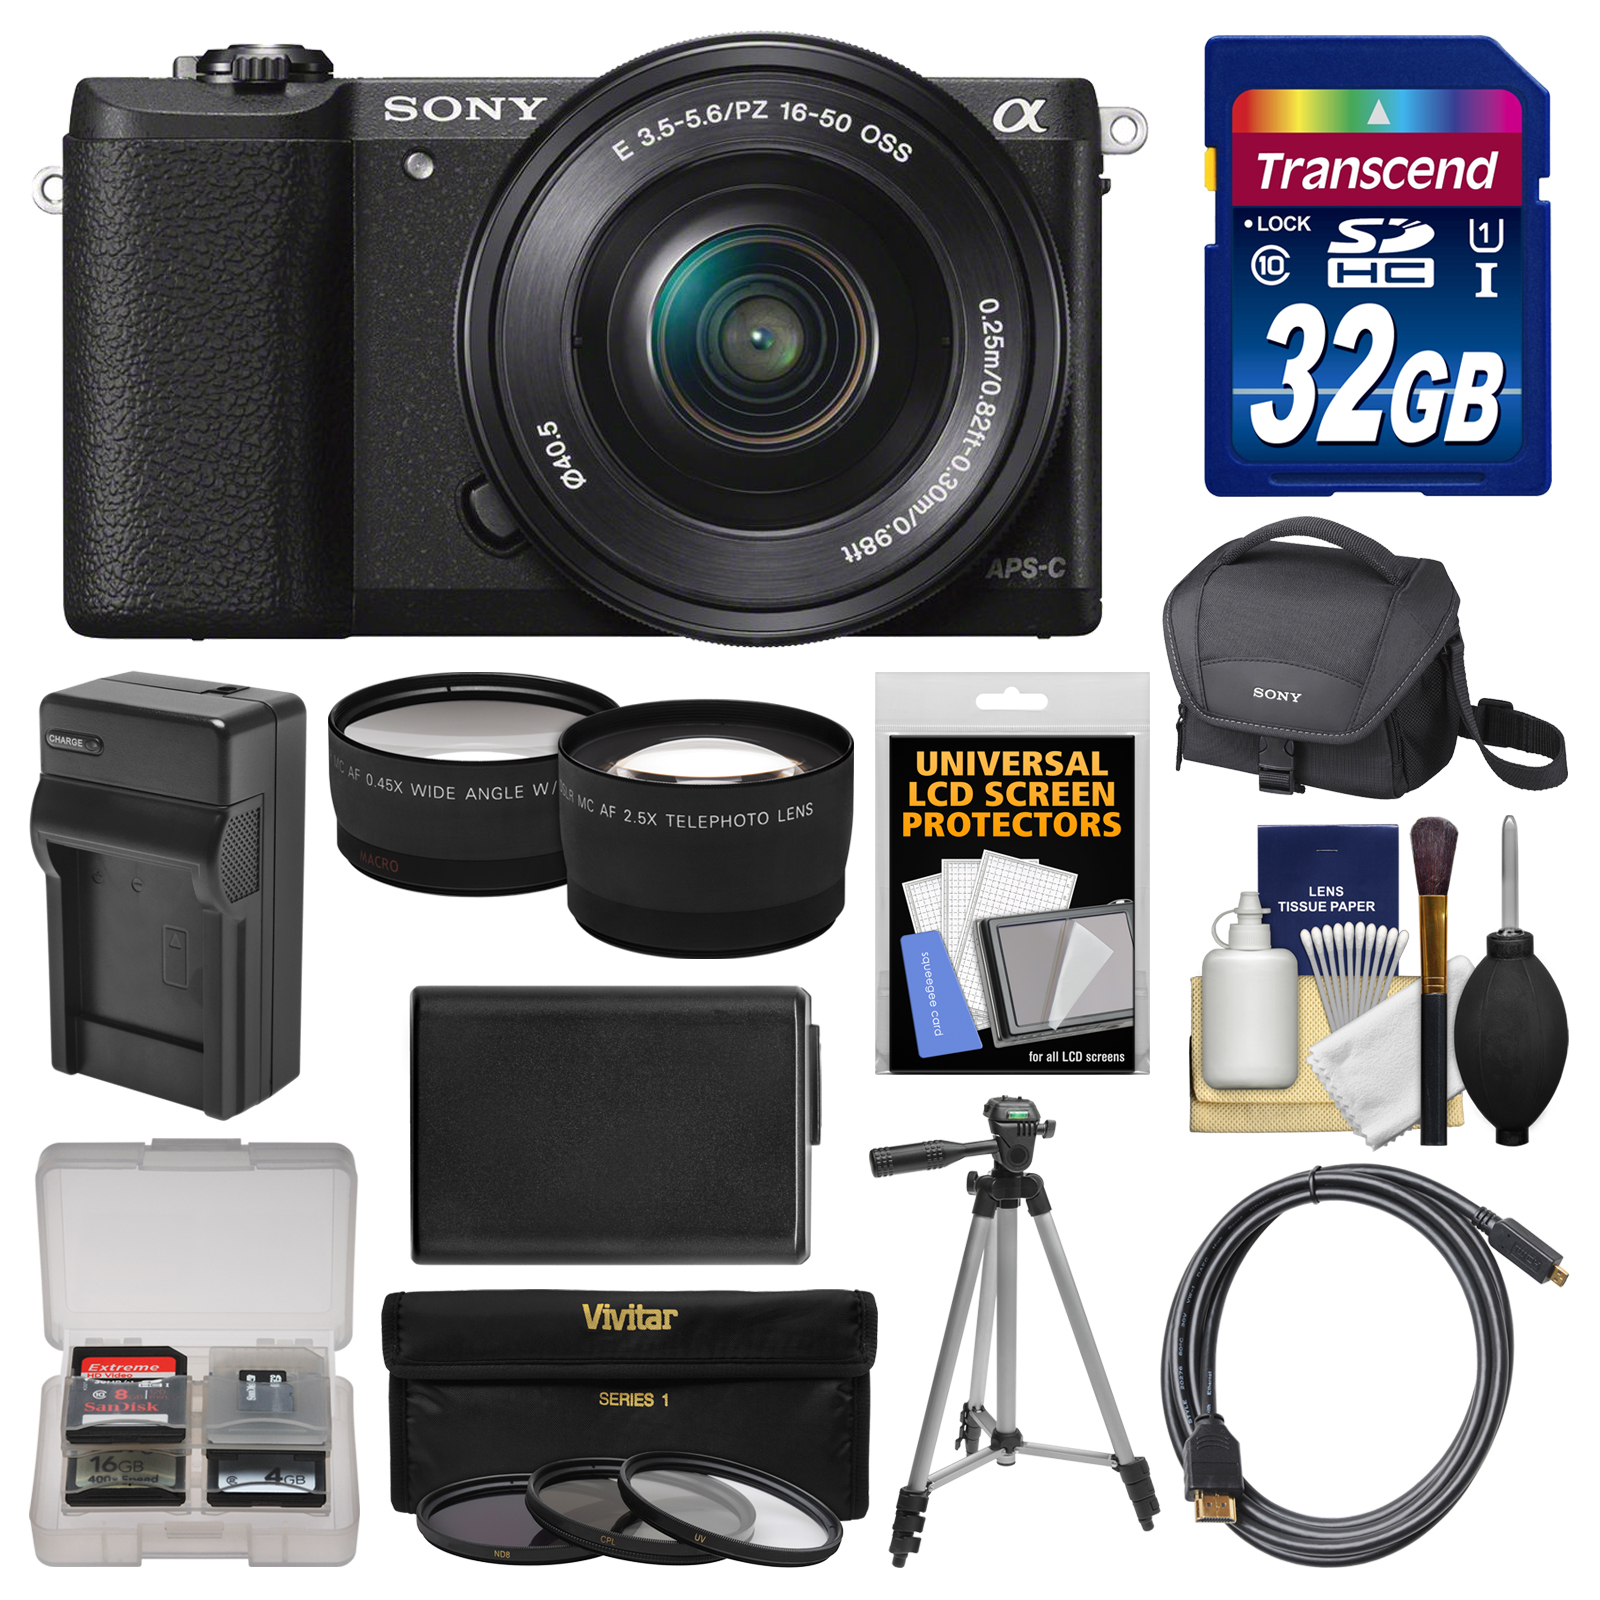 Sony Alpha A5100 Wi-Fi Digital Camera & 16-50mm Lens (Black) with 32GB Card + Case + Battery & Charger +... by Sony